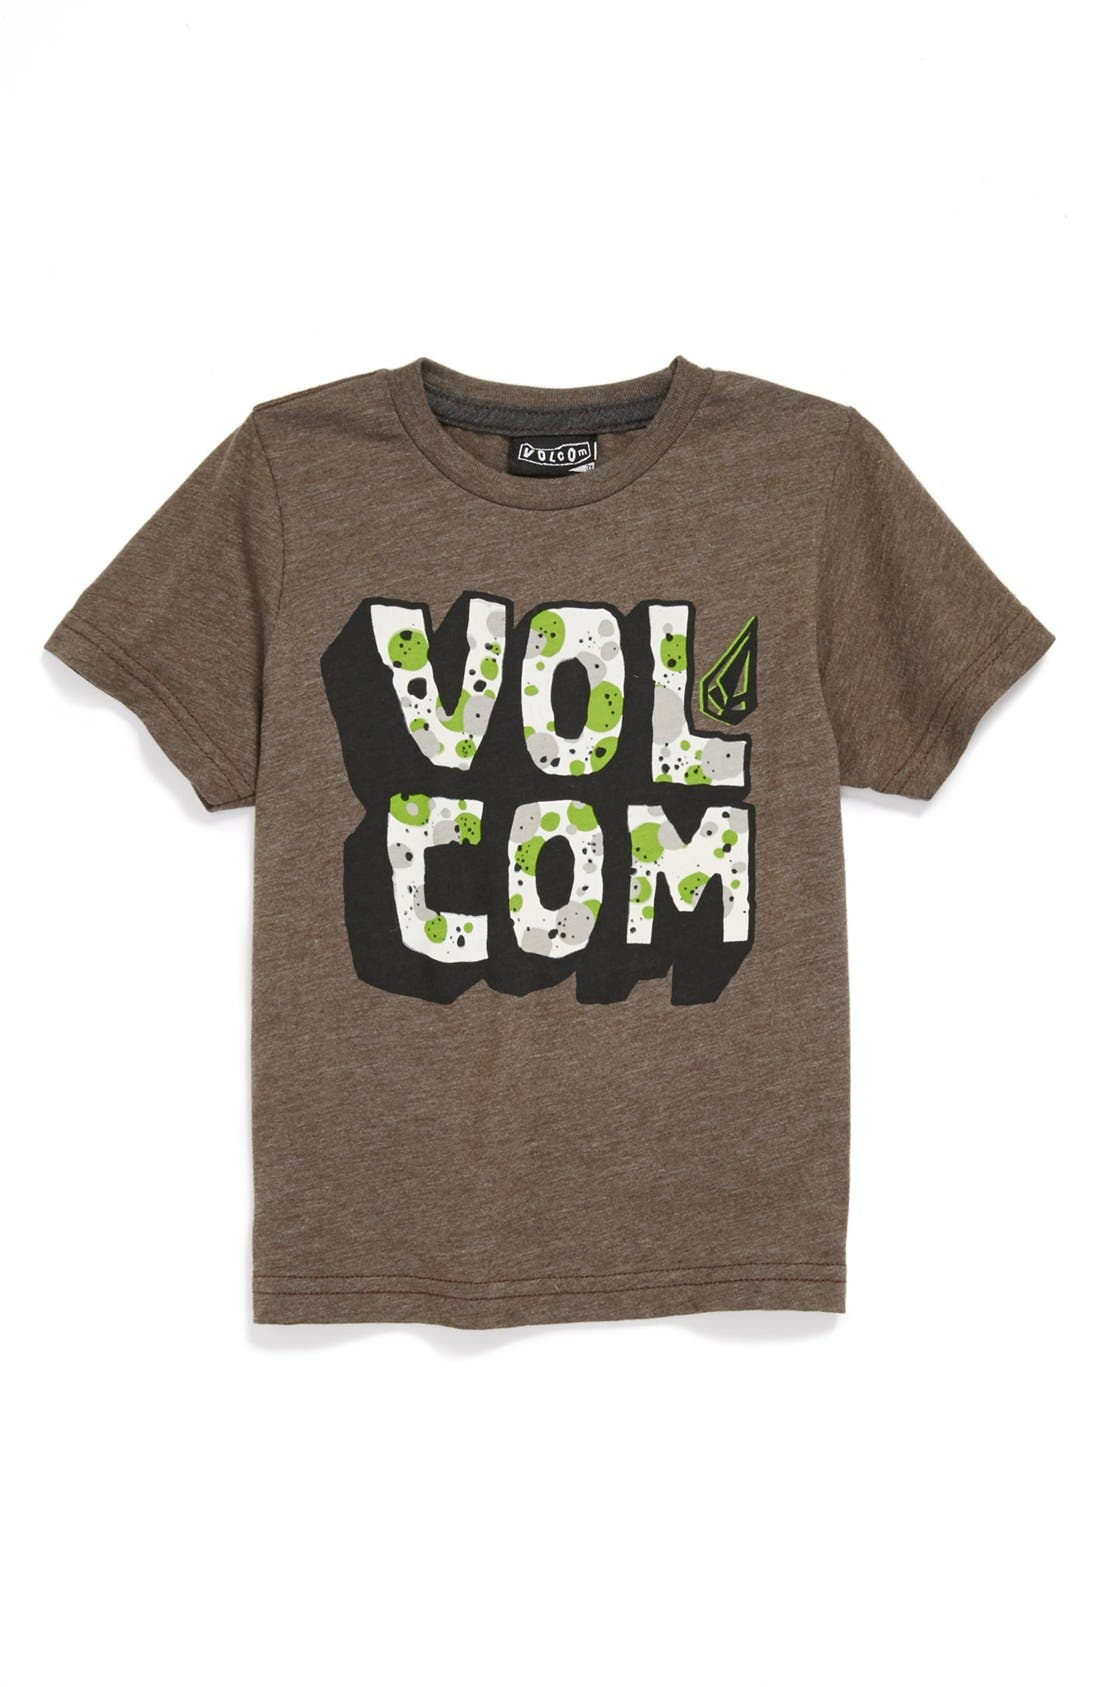 Main Image - Volcom 'Sieben' T-Shirt (Toddler)